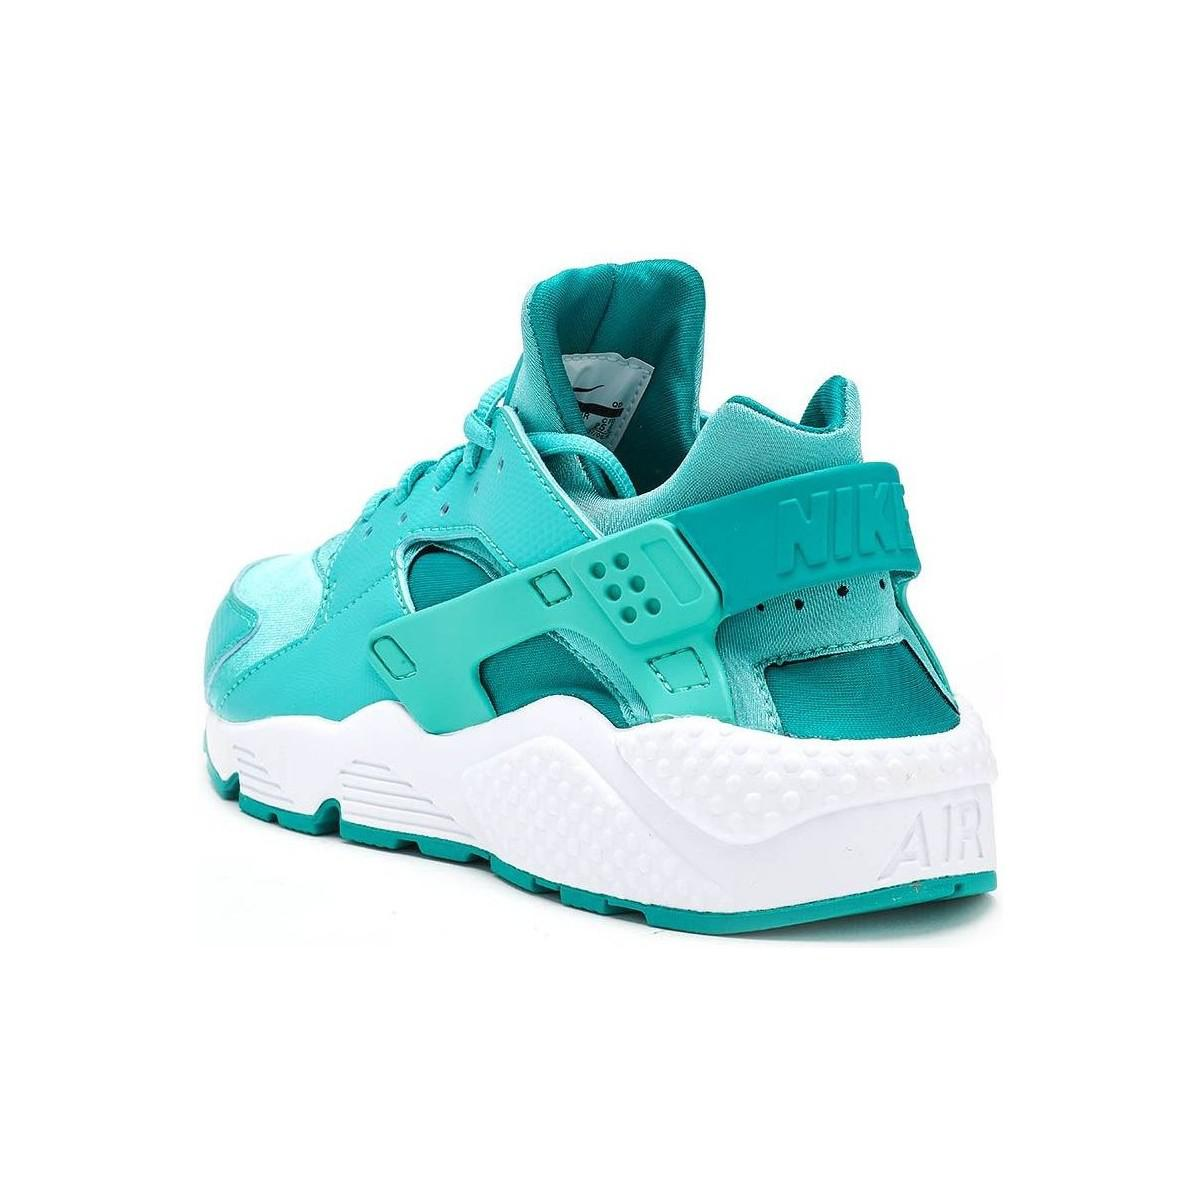 Nike Air Huarache Run Women Trainers in Turquoise 634835 302 women's Shoes (Trainers) in Buy Online New Cost Cheap Price 2018 New Cheap Price Collections Cheap Online Cheap Sale 2018 CgLlF